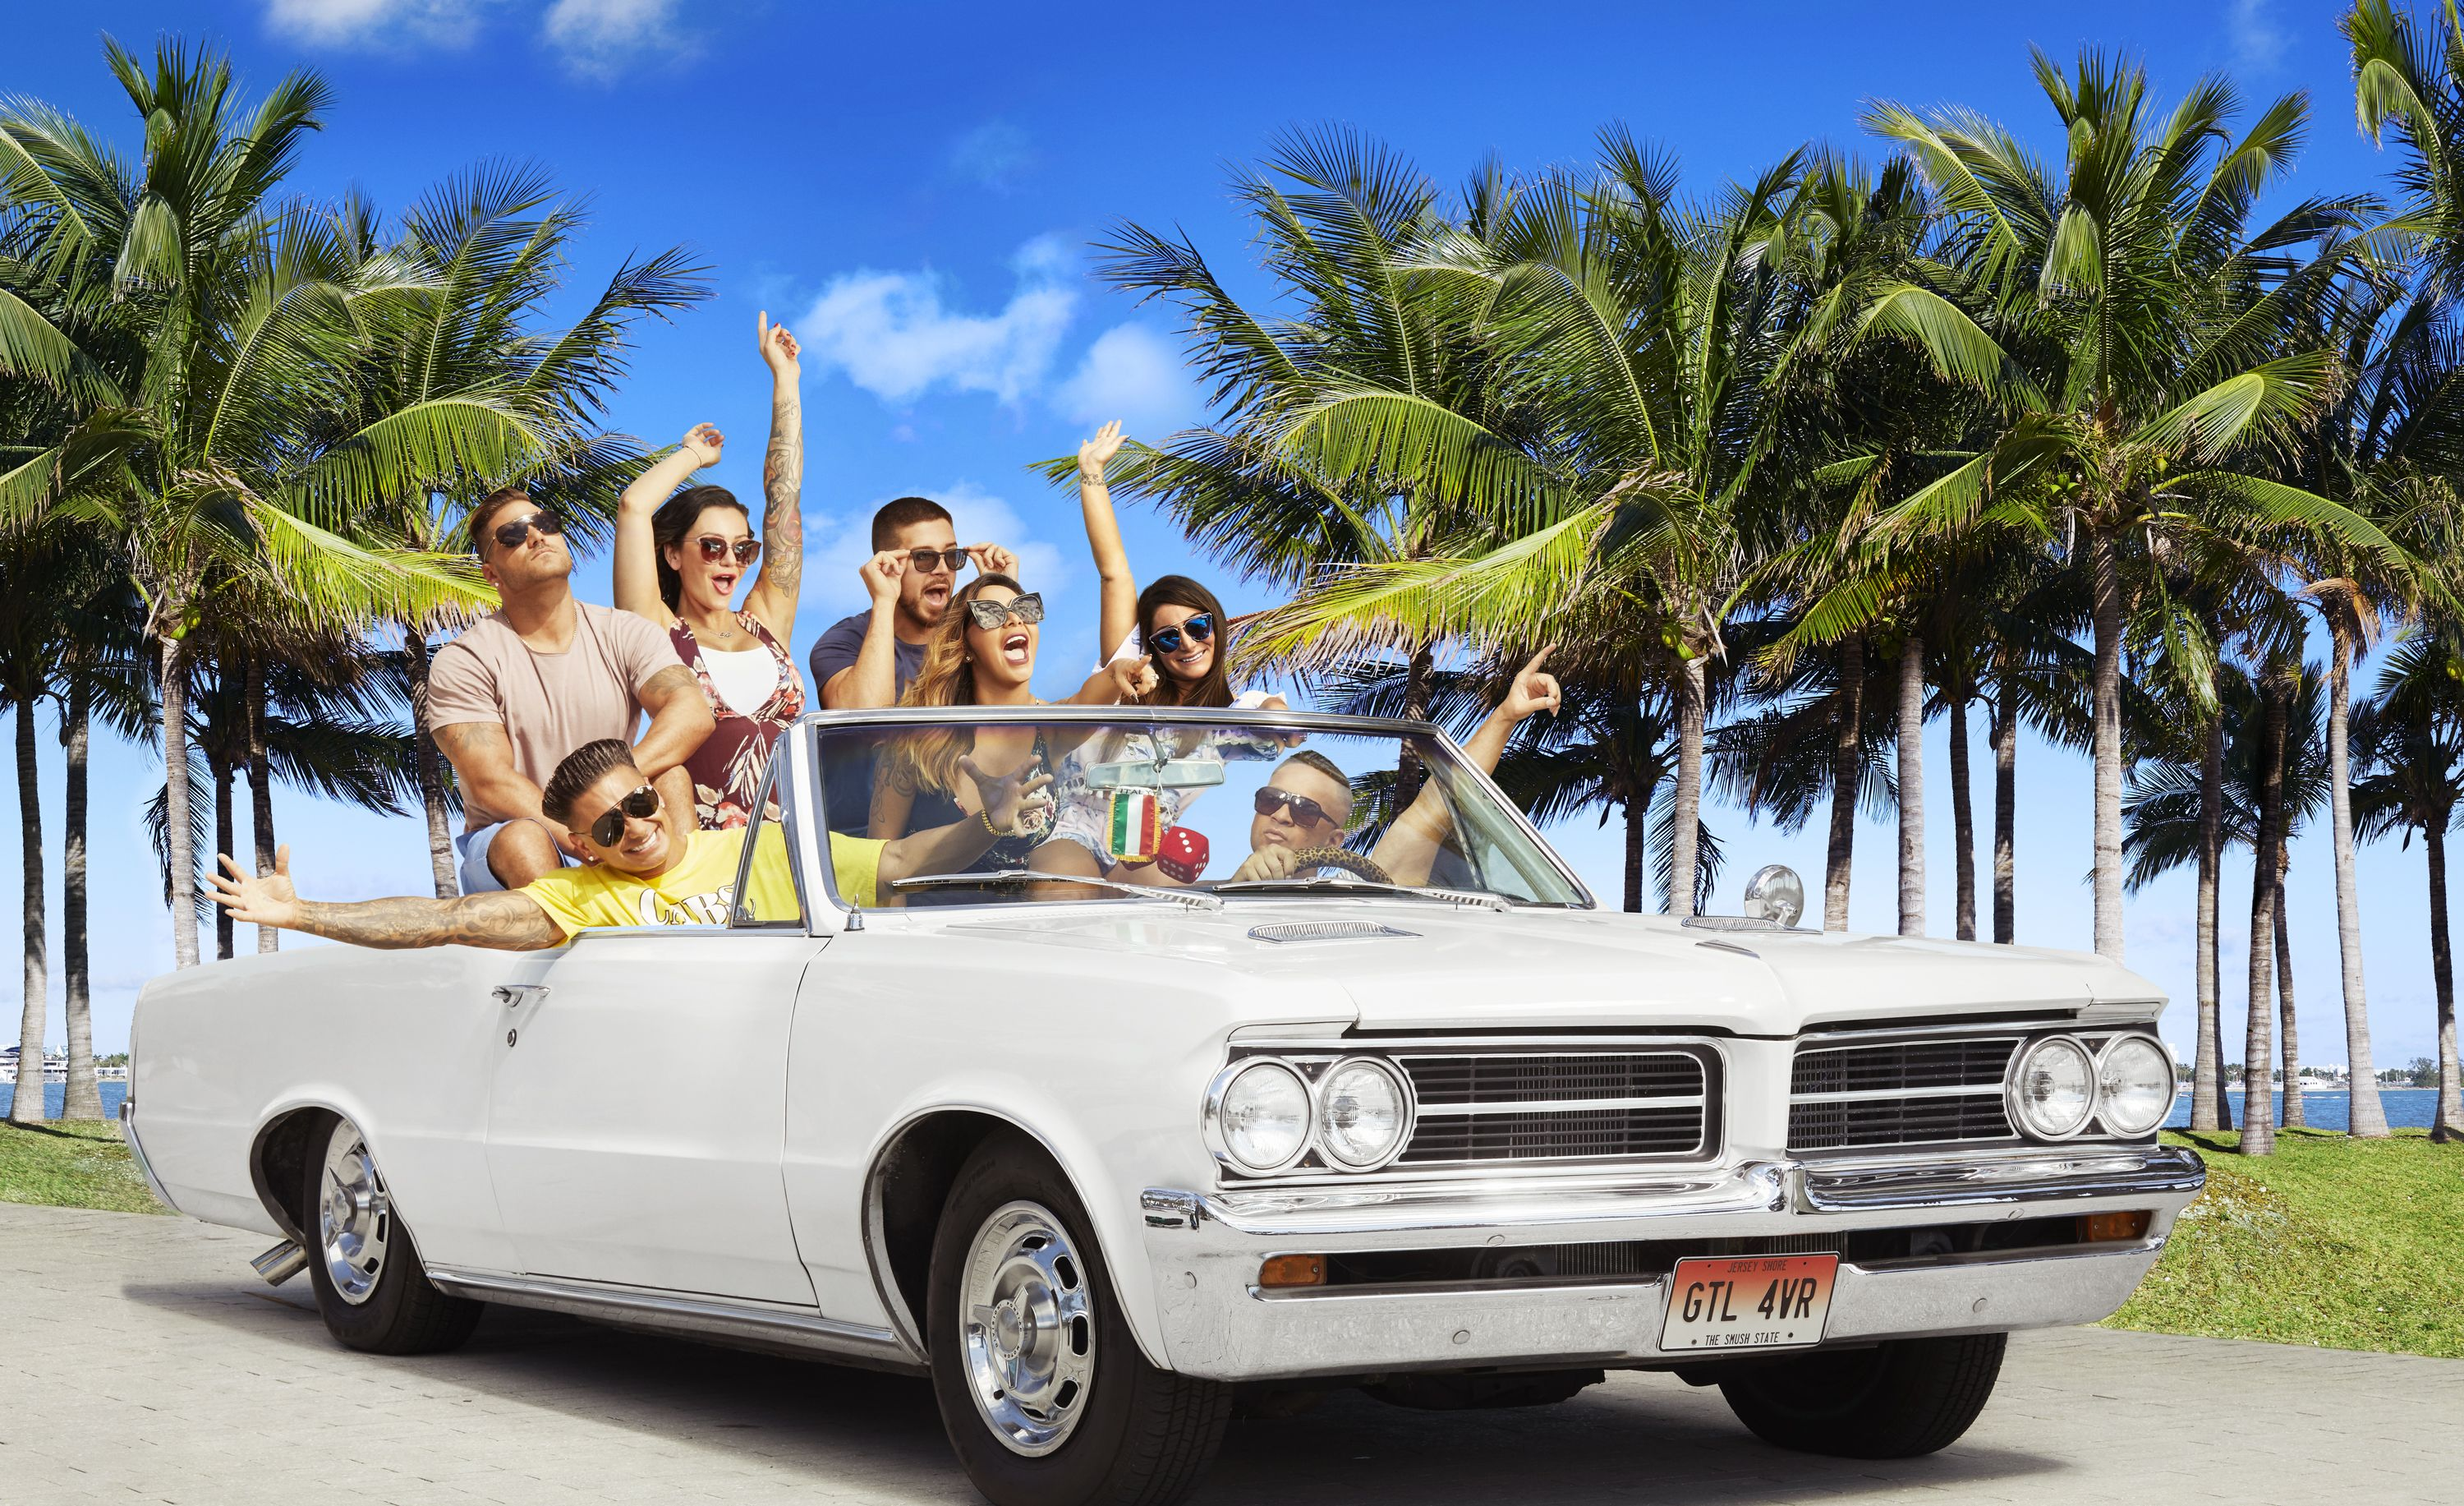 The cast of Jersey Shore Family Vacation drives down a palm tree–lined street in a white convertible.